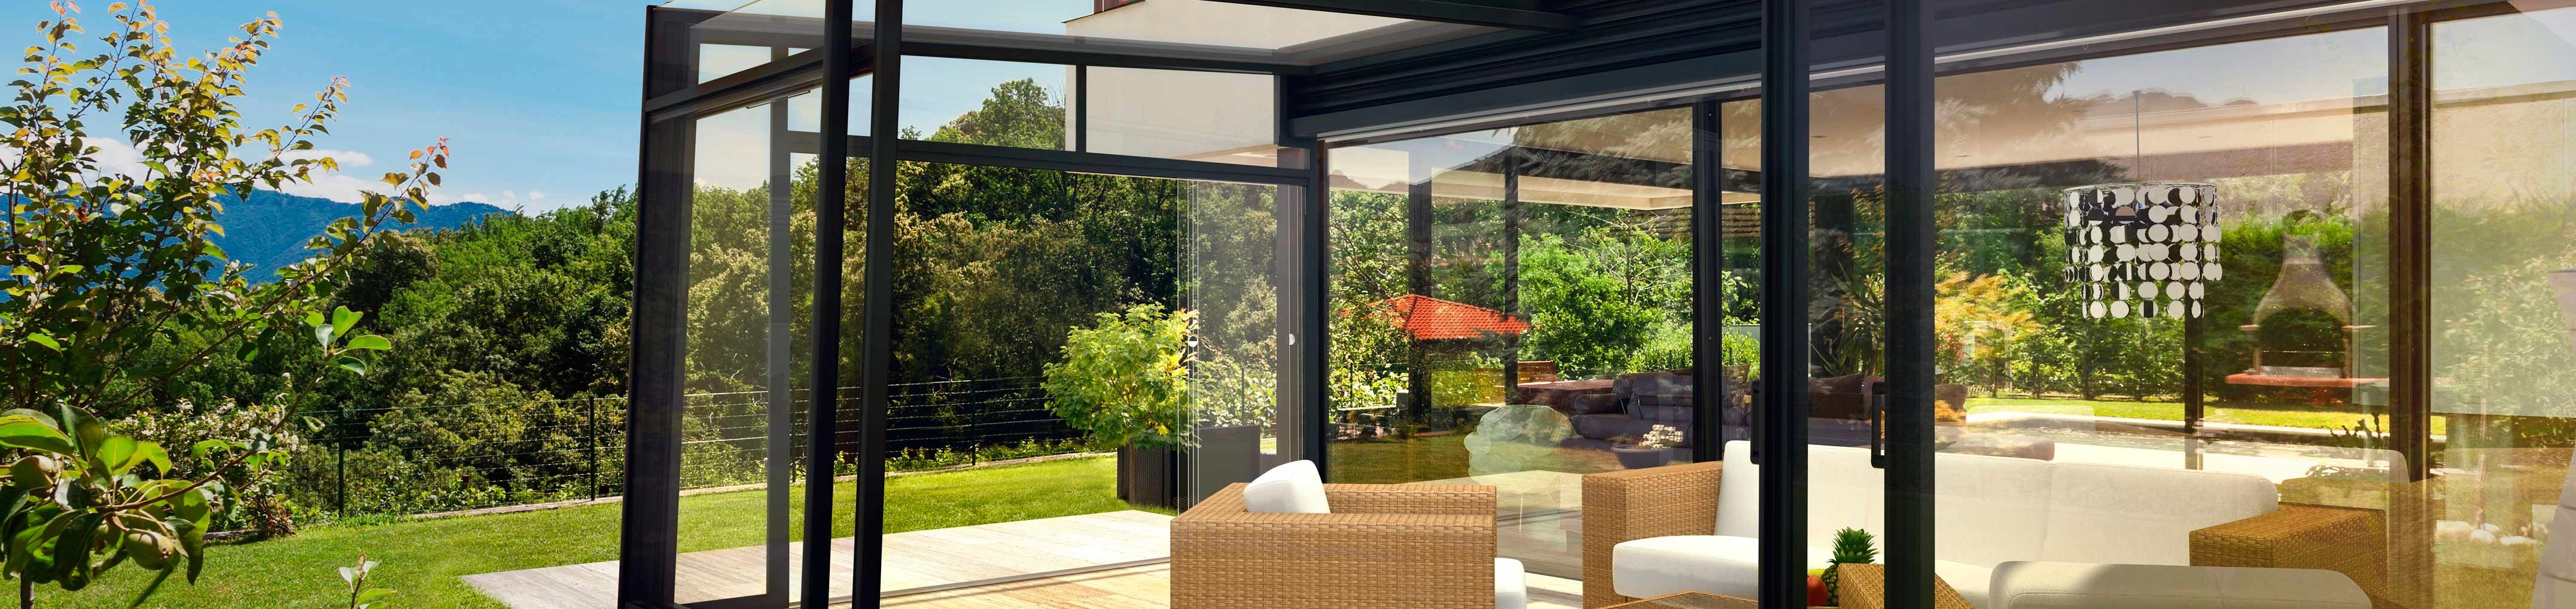 Opened retractable patio enclosure CORSO Ultima